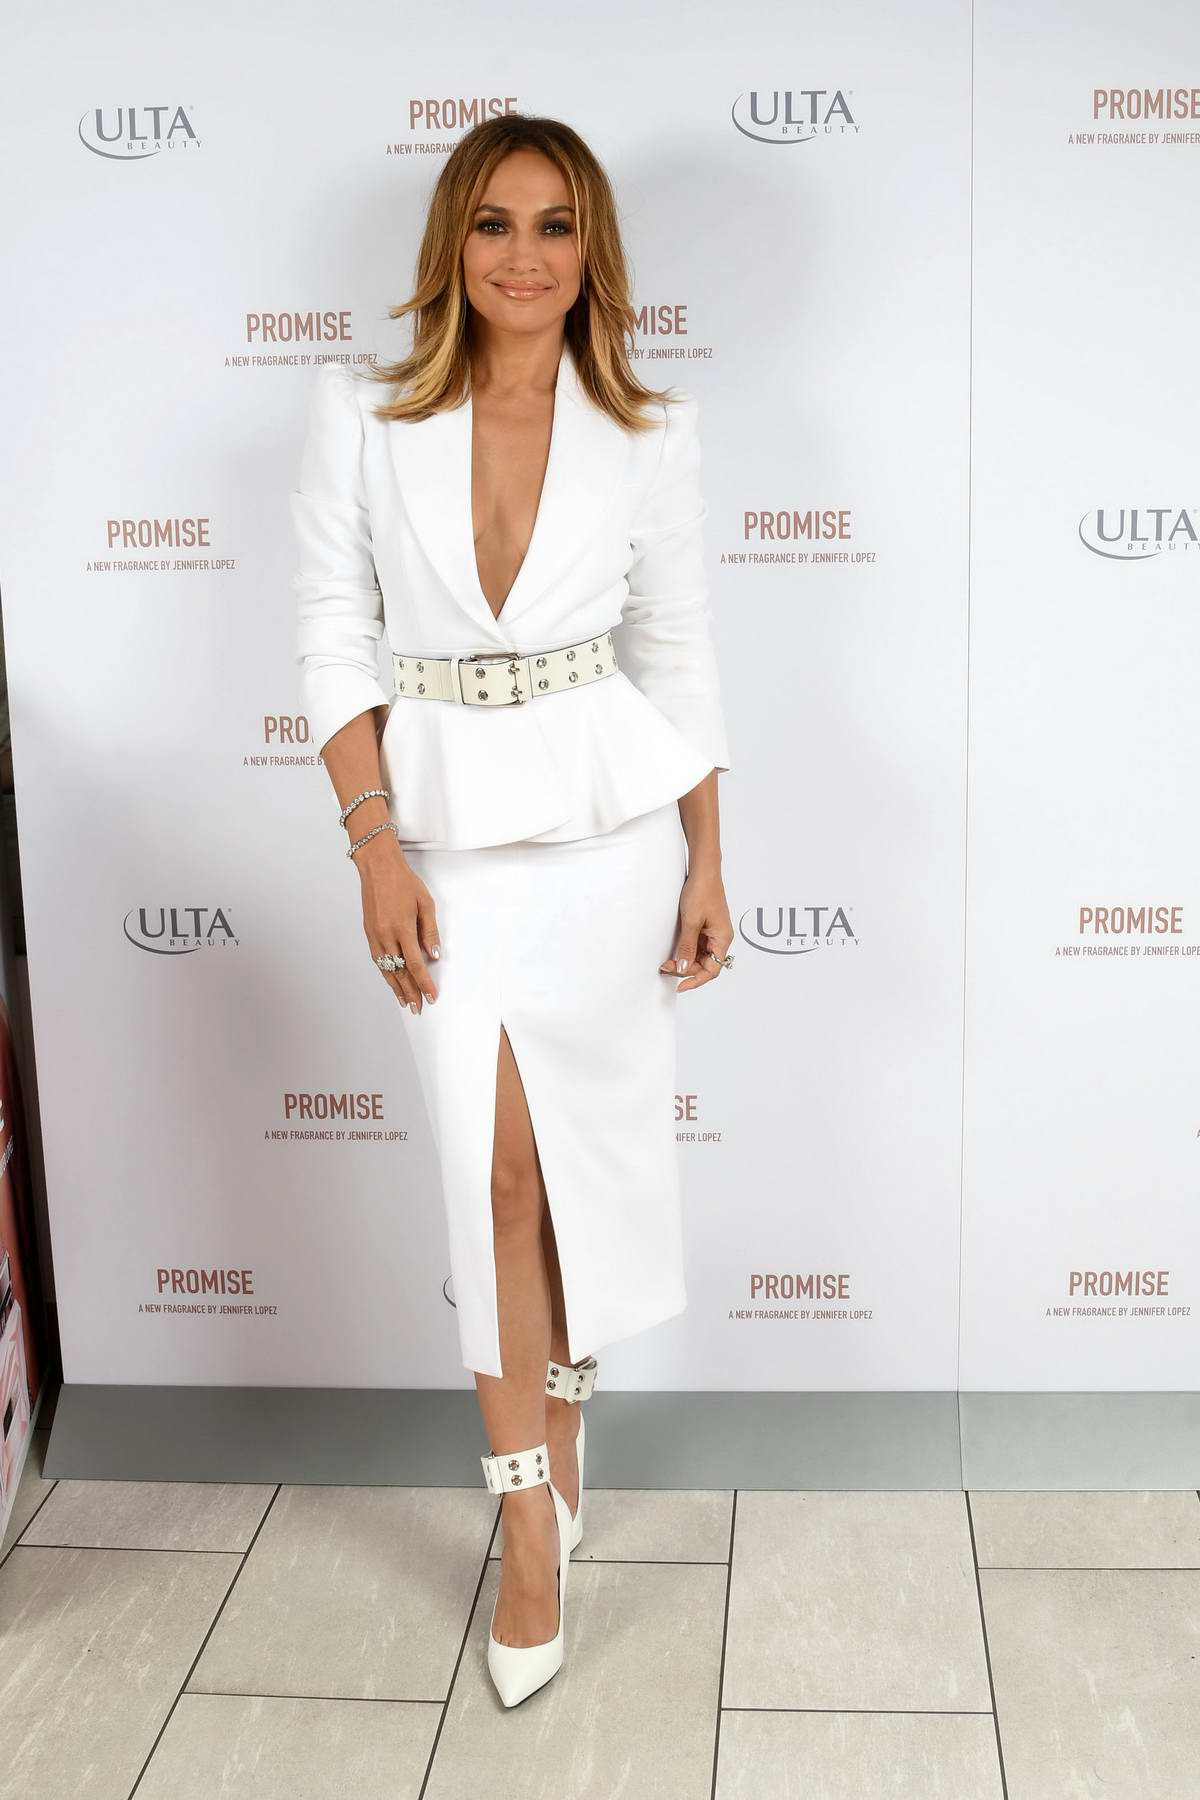 Jennifer Lopez attends the launch of her perfume 'Promise' at Ulta Beauty in New York City